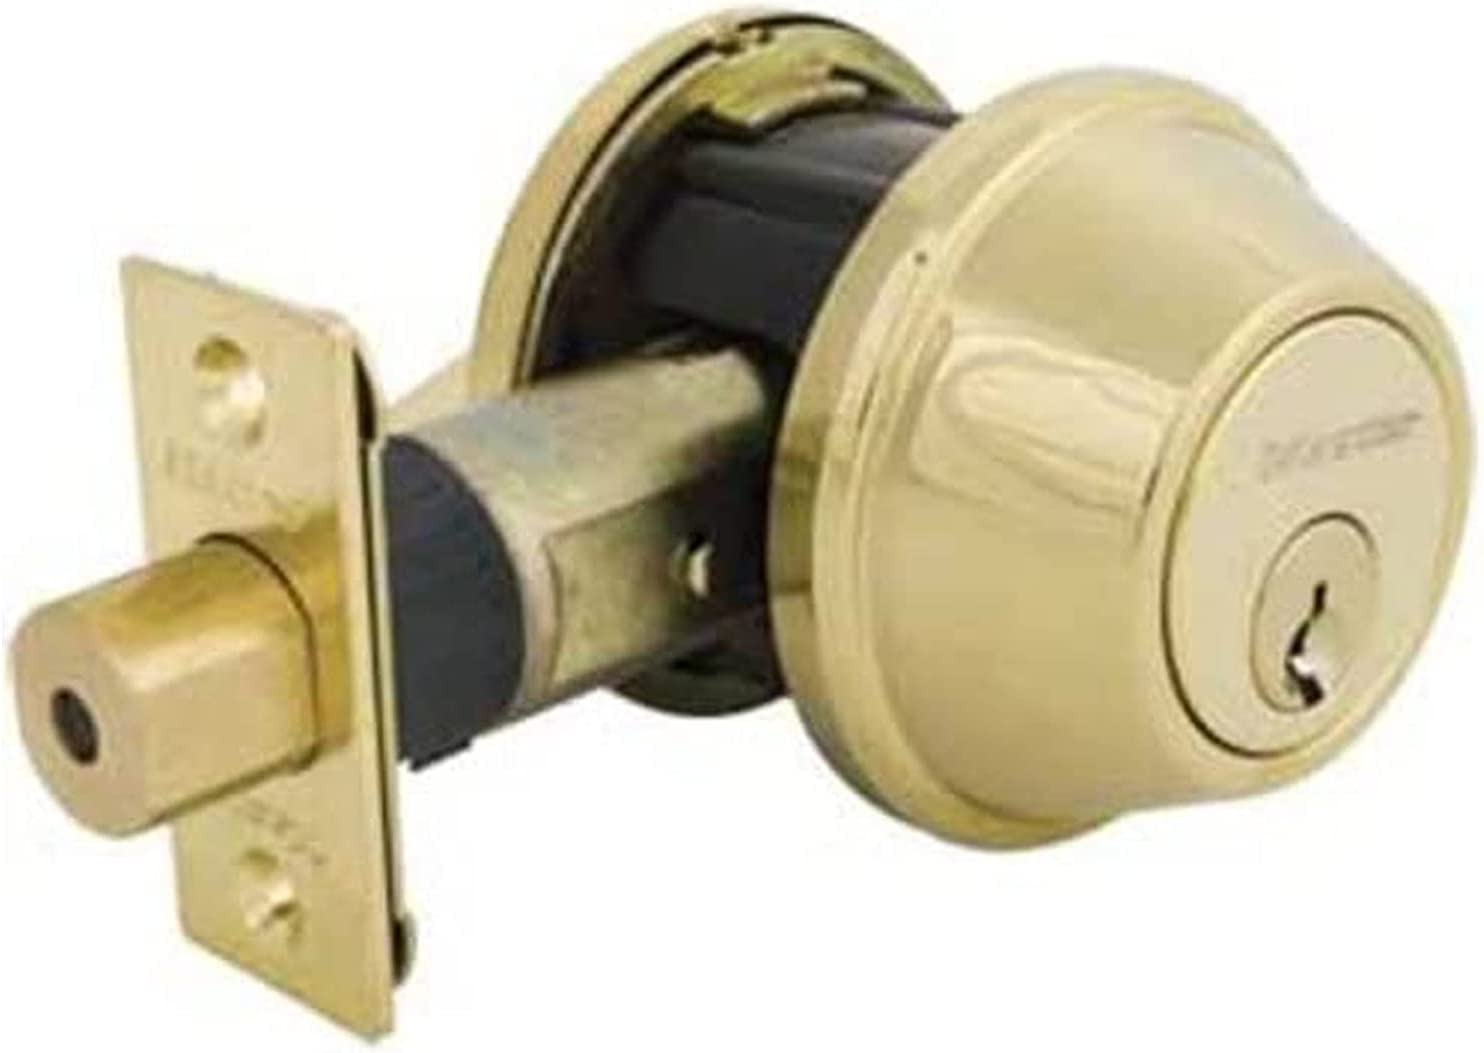 Master Lock Some reservation DSNRN0603PBOX Nightwatch Deadbolt Over item handling ☆ Cyl Bump Stop with